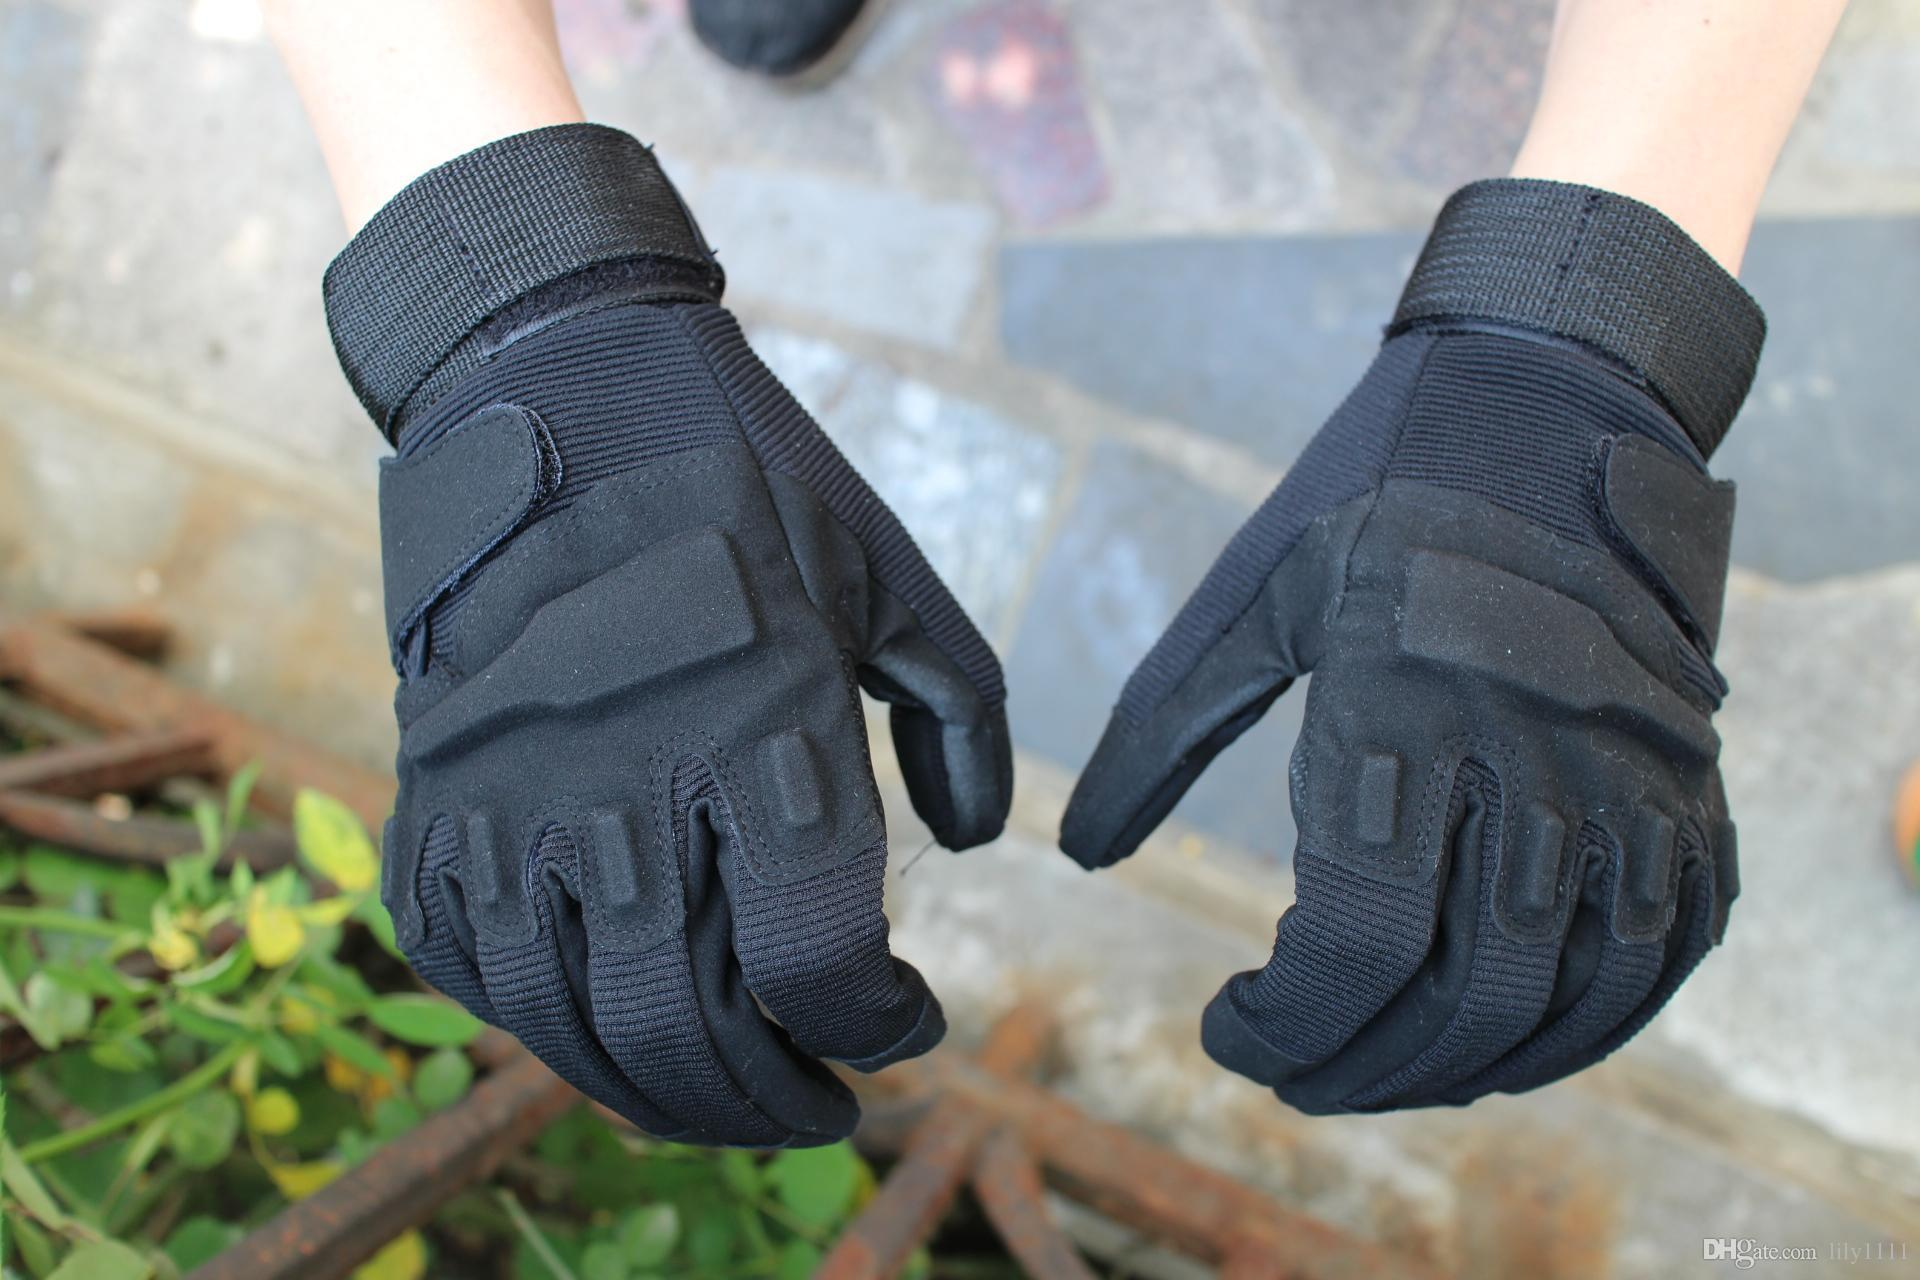 Shanghai Story Men's Army Gloves Man Full Finger Tactical Gloves Military Quick Dry Anti-Slippery Leather Combat Gloves 3 Color